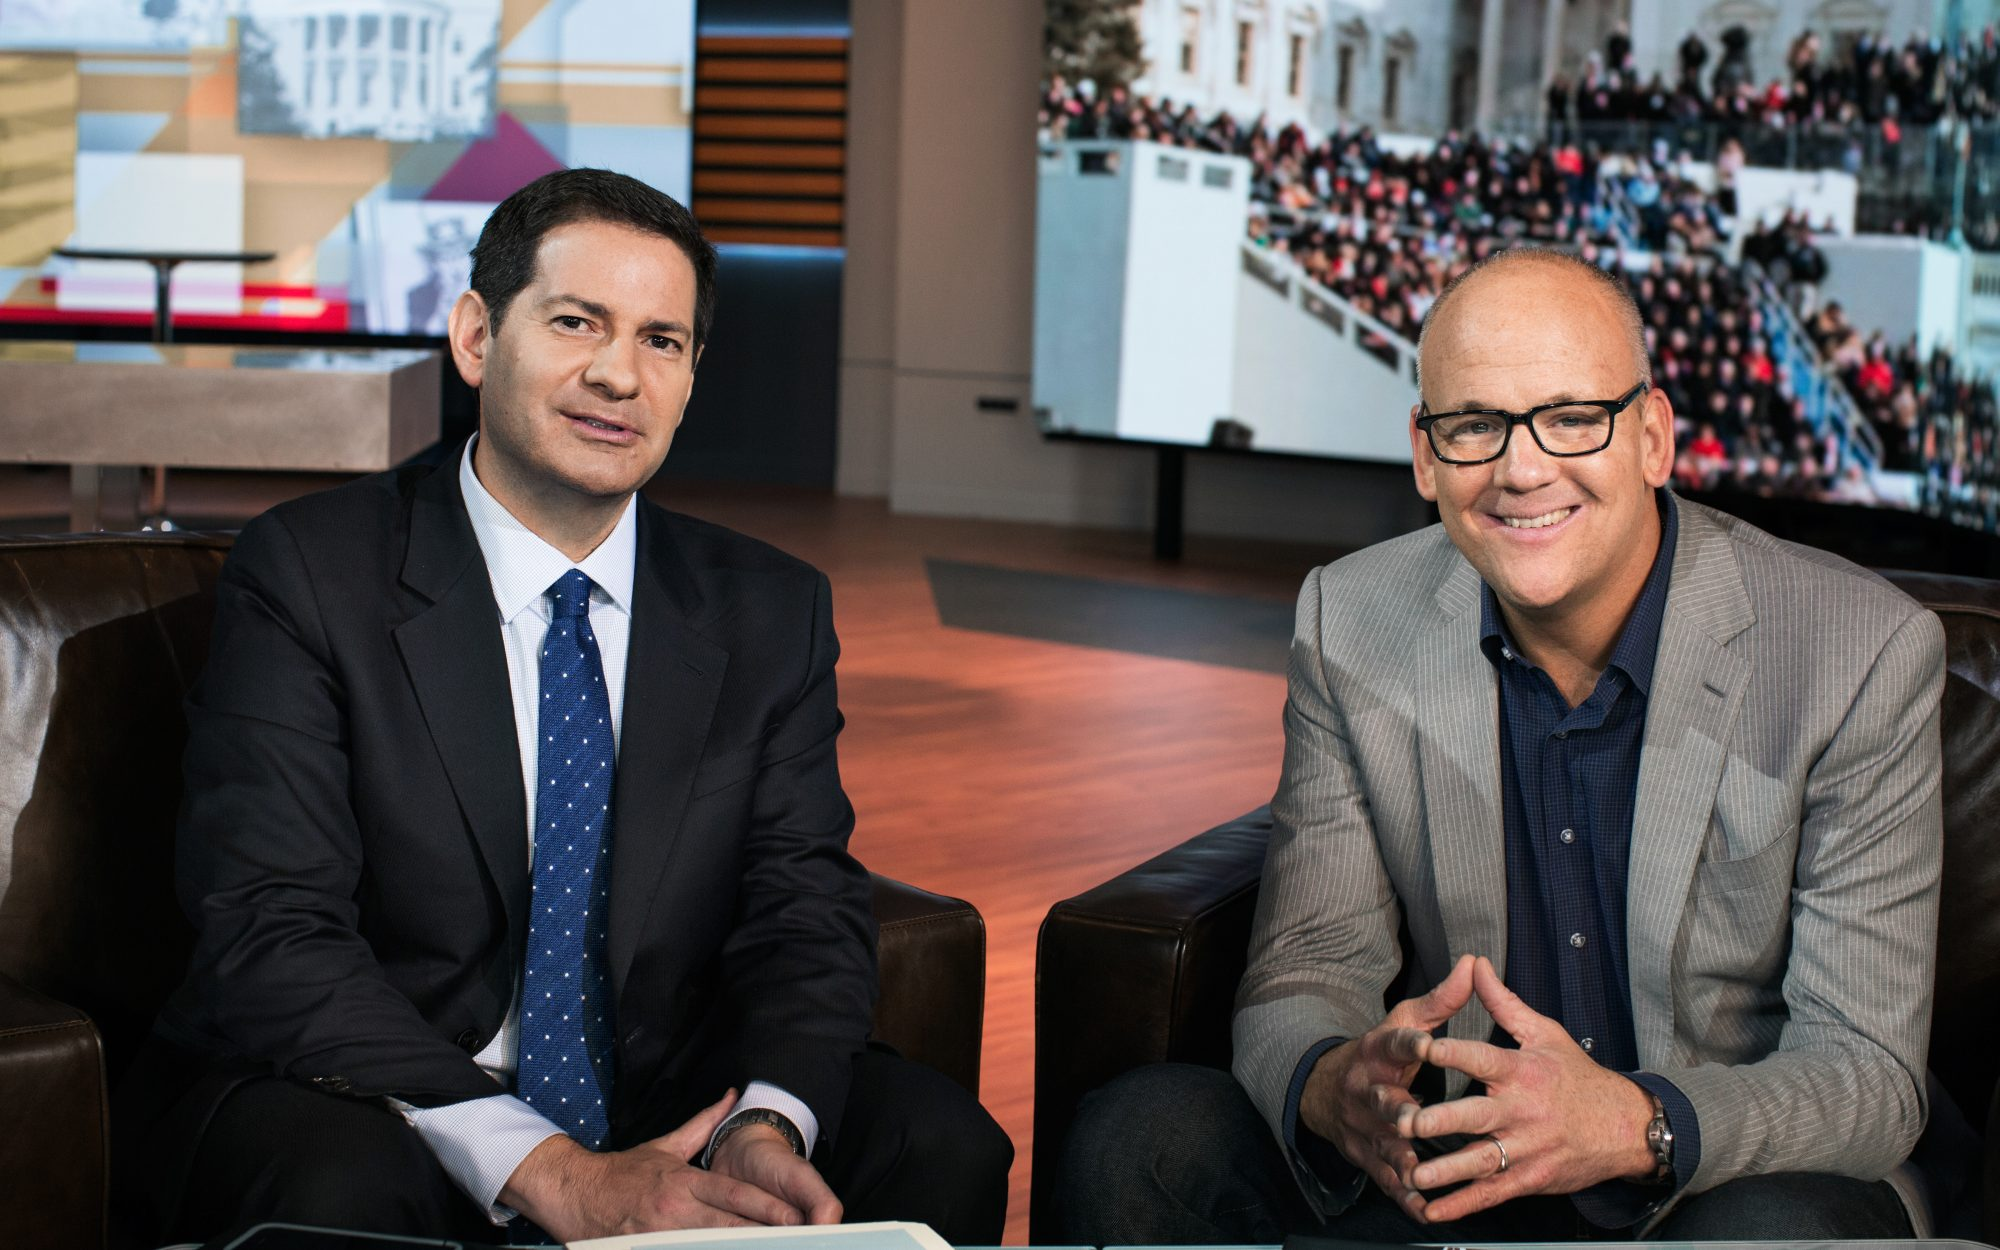 Talking Travel With: Mark Halperin and John Heilemann of 'With All Due Respect'